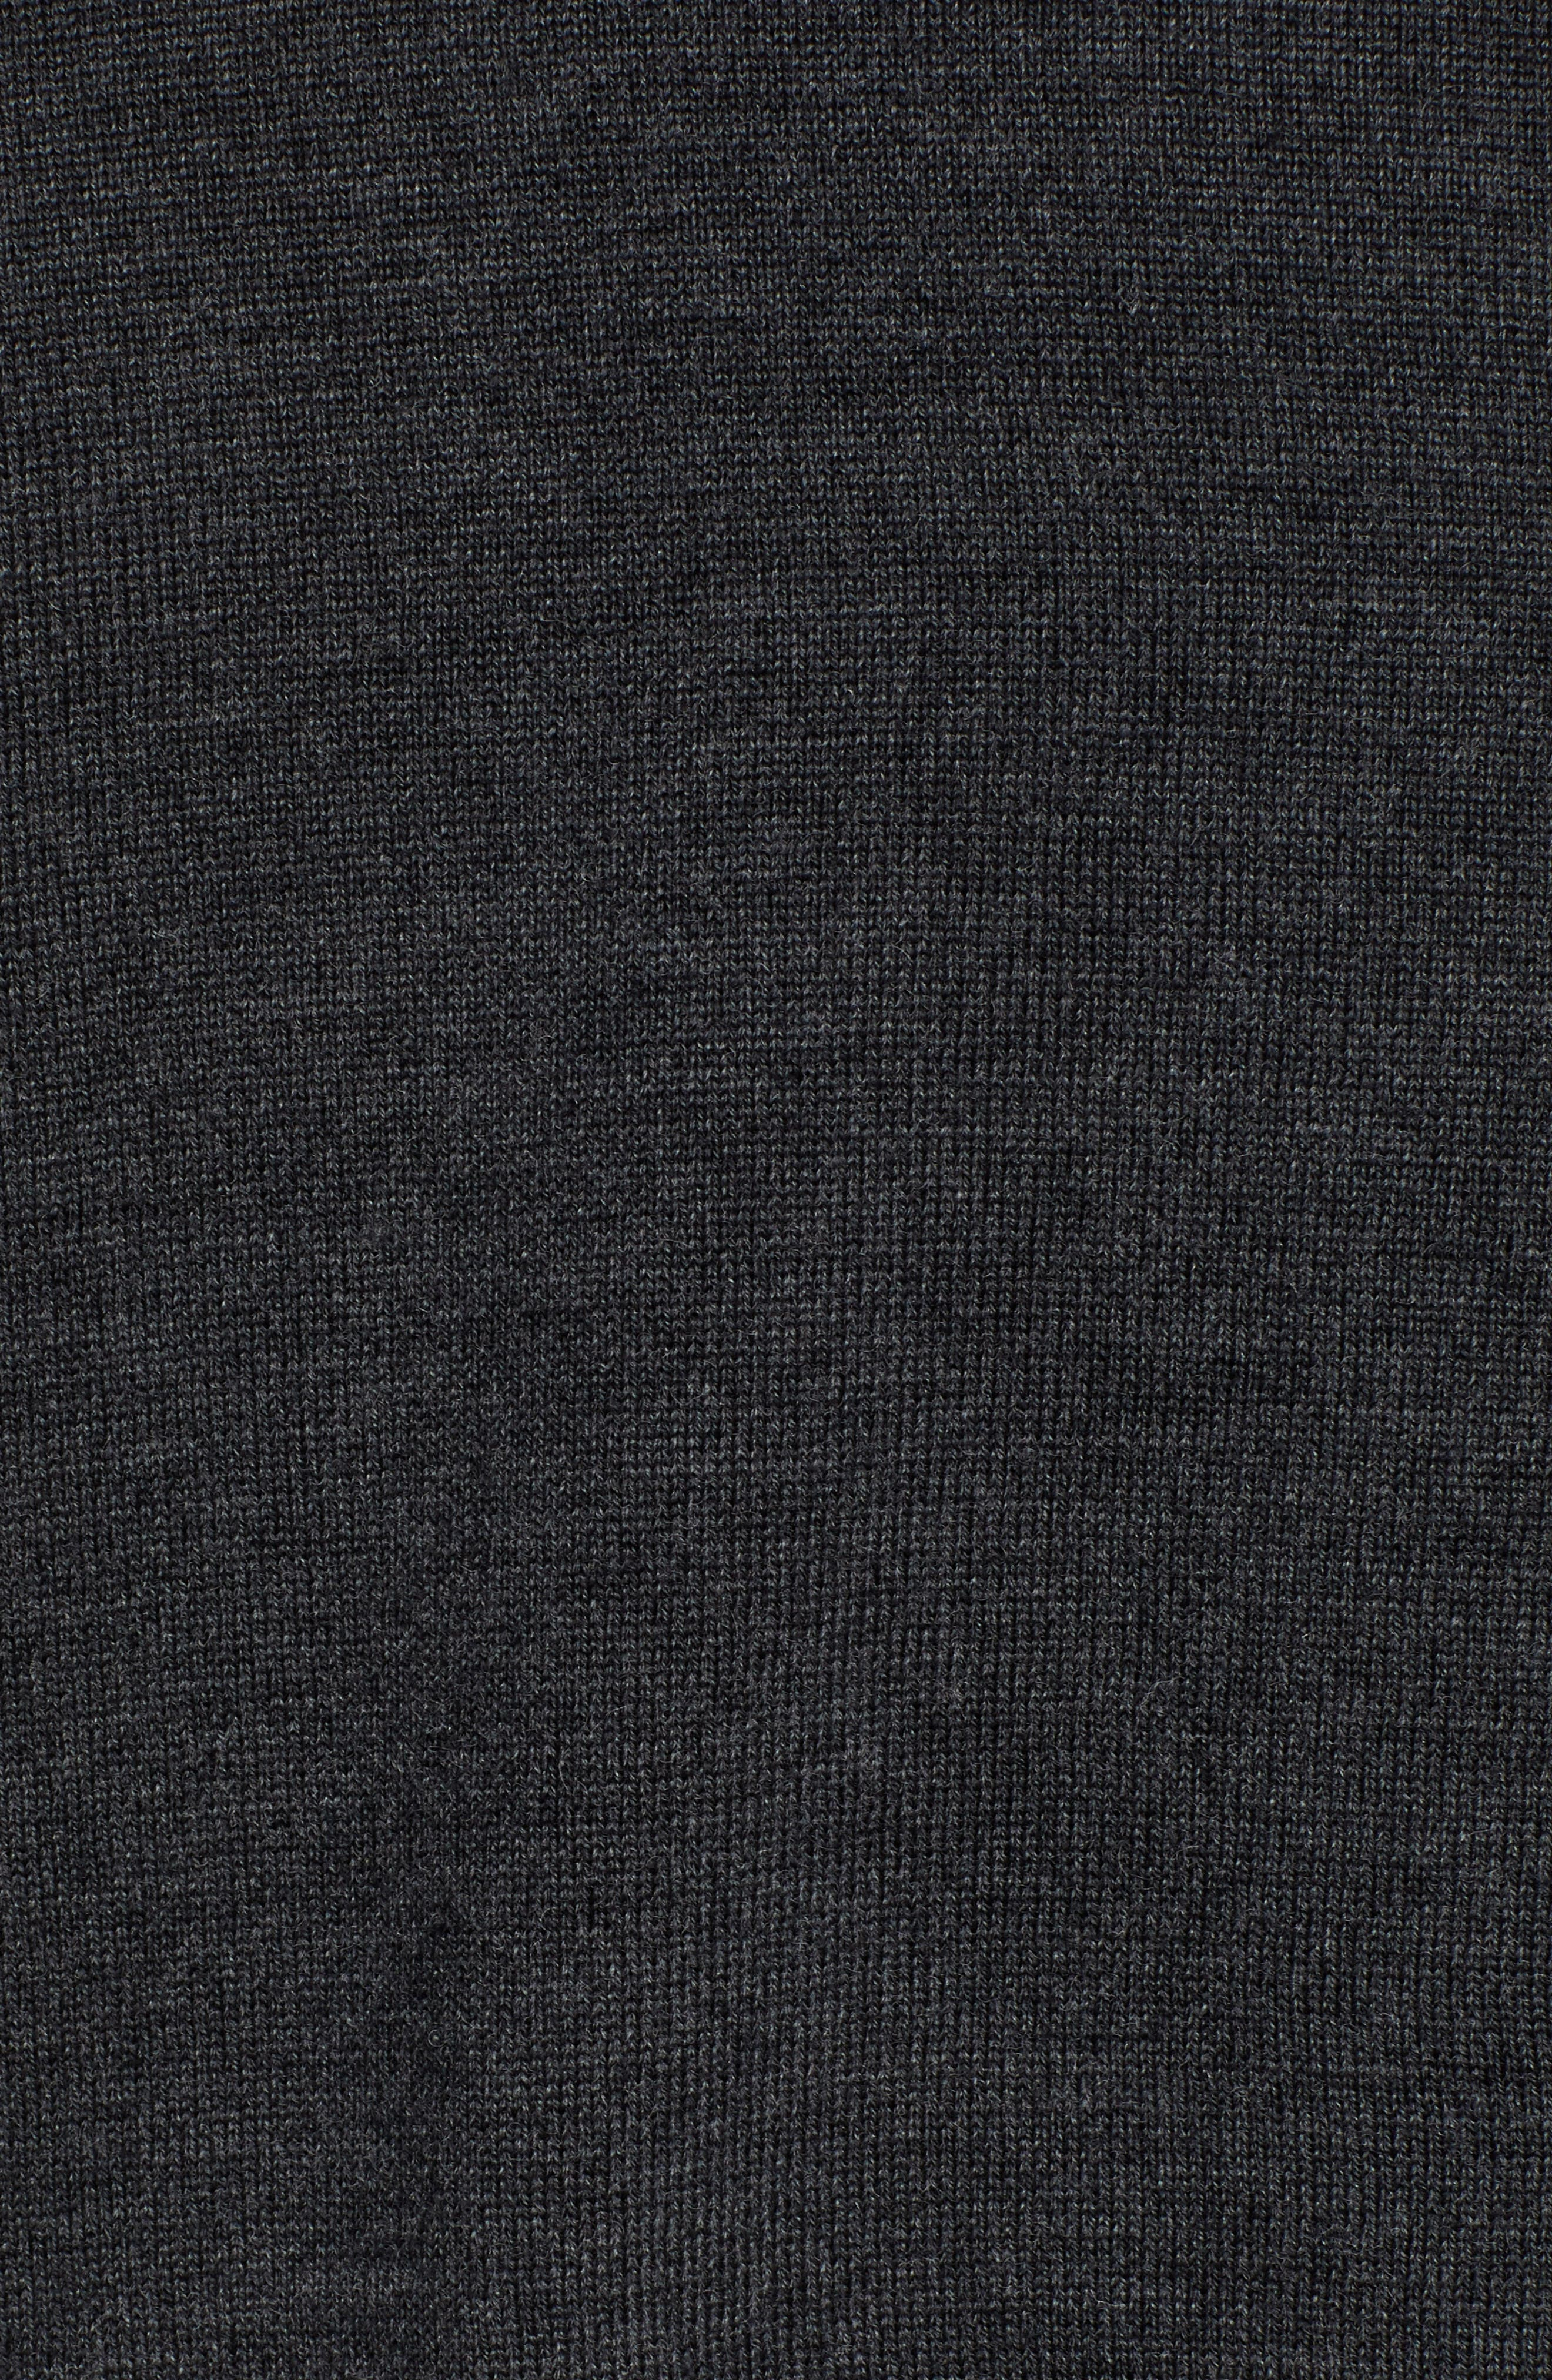 V-Neck Merino Wool Sweater,                             Alternate thumbnail 5, color,                             HEATHER CHARCOAL